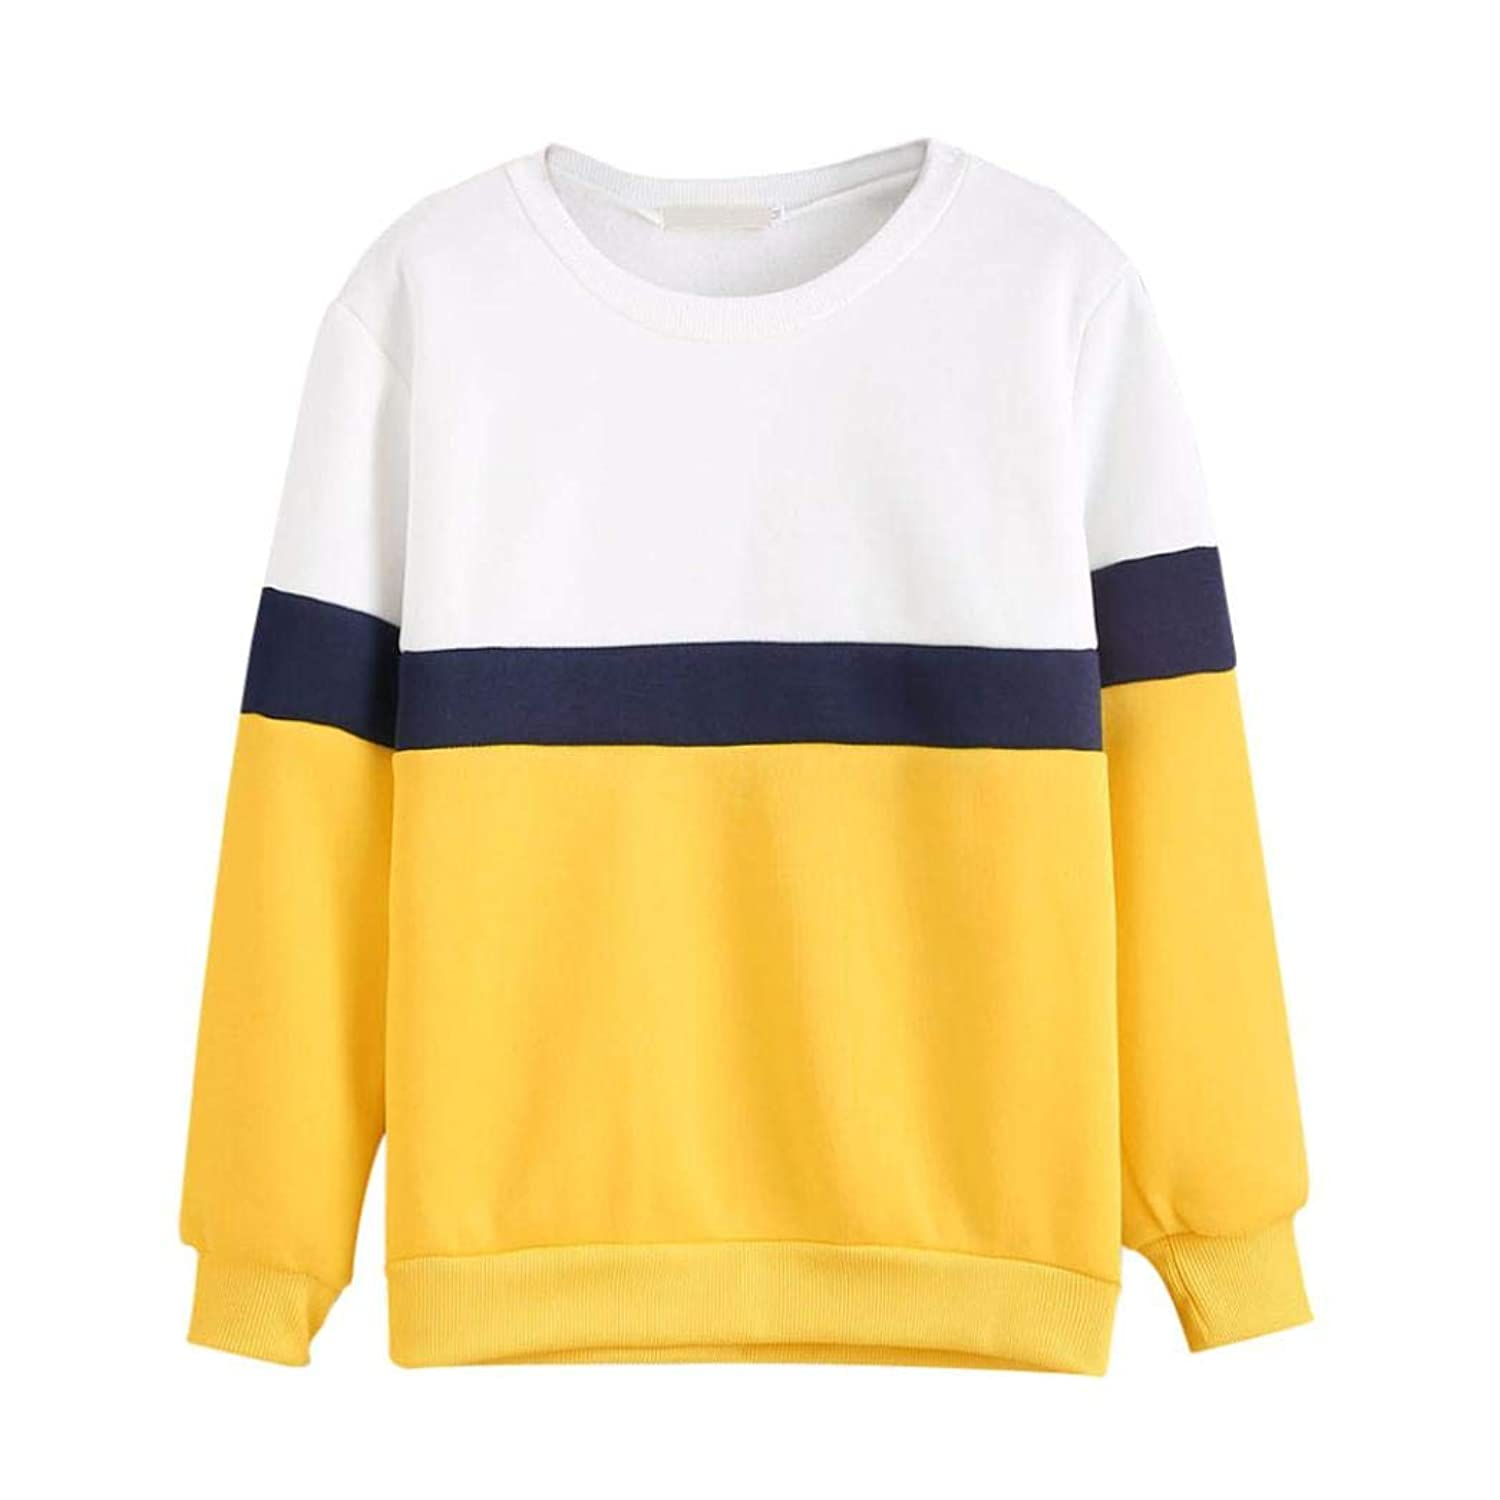 ce8b4261e09a Top9: Kulywon Women Round Neck Long Sleeve Casual Sweatshirt Pullover Tops